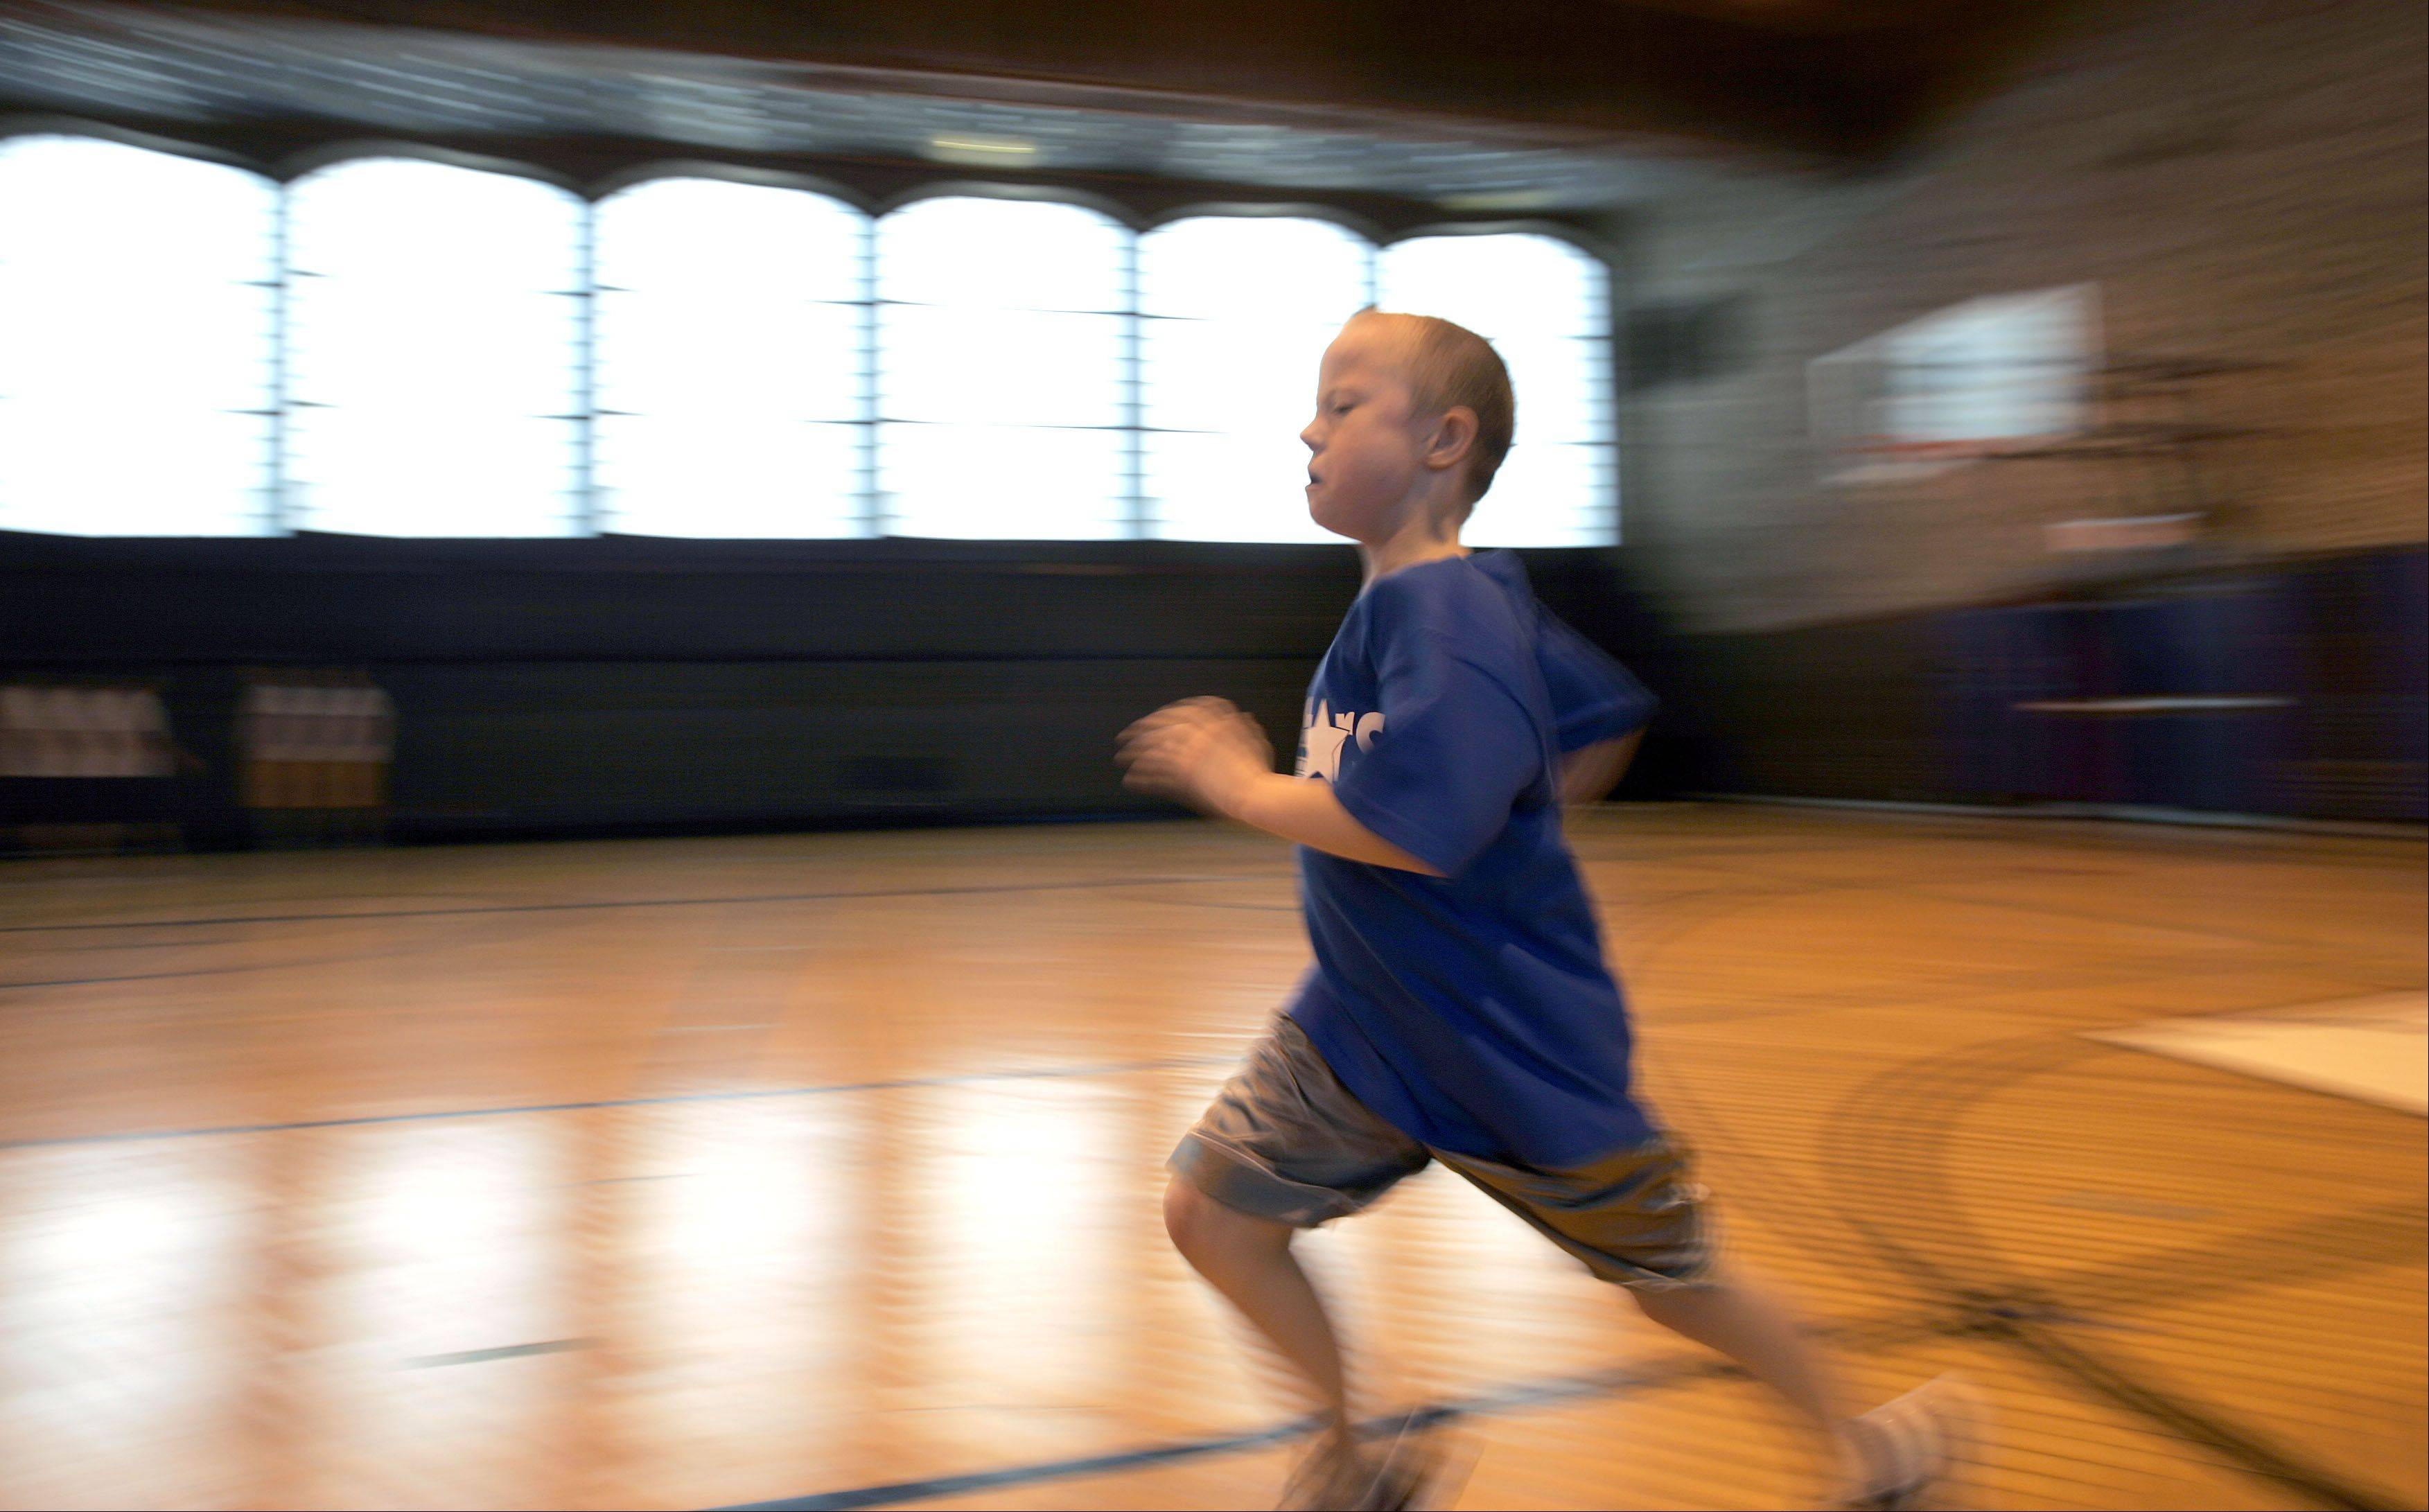 Ian Fergus works on the 200-meter sprint during practice for the U-46 BlueStars.